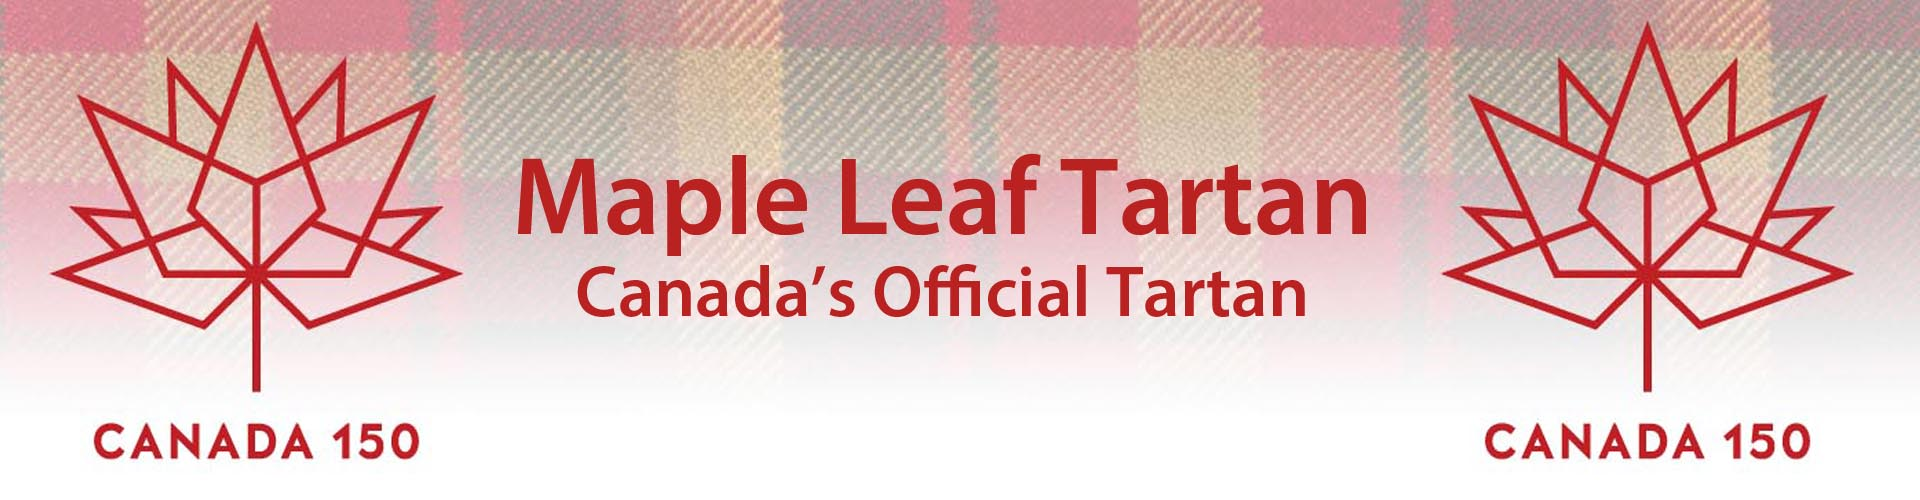 mapleleaf-header.jpg